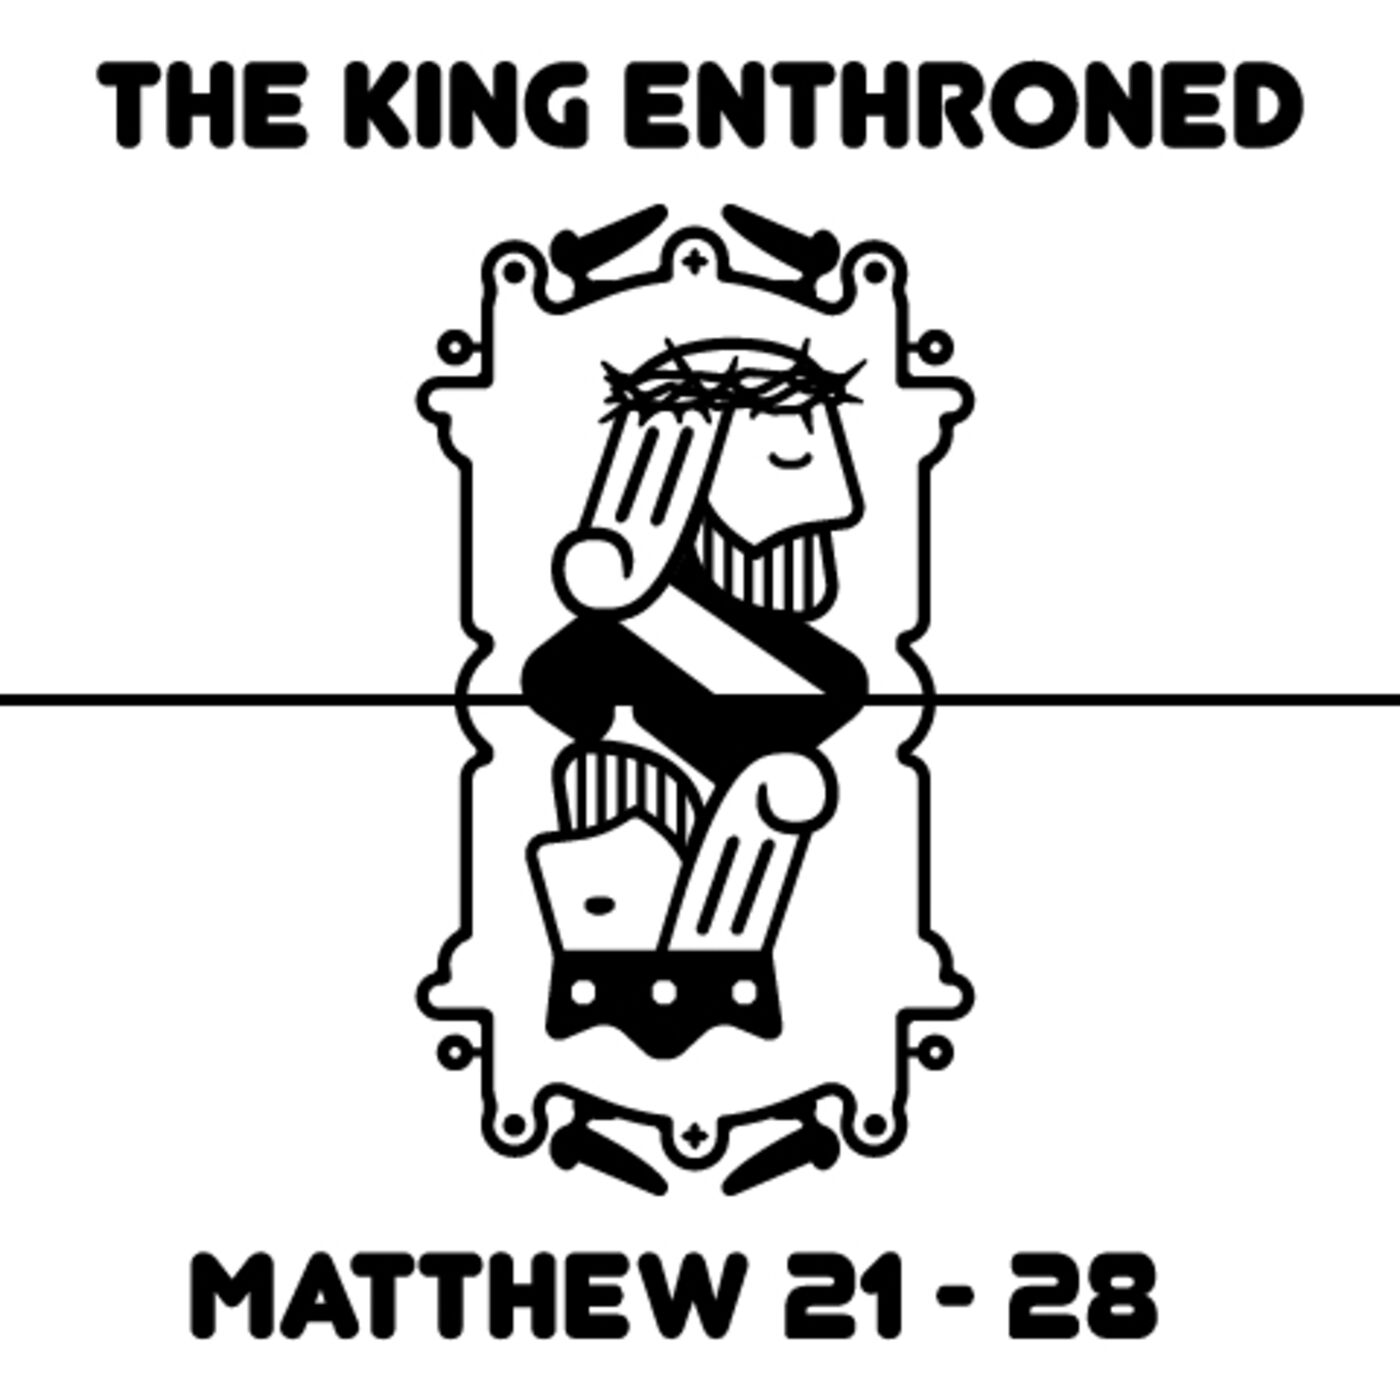 Matthew: The King's Death